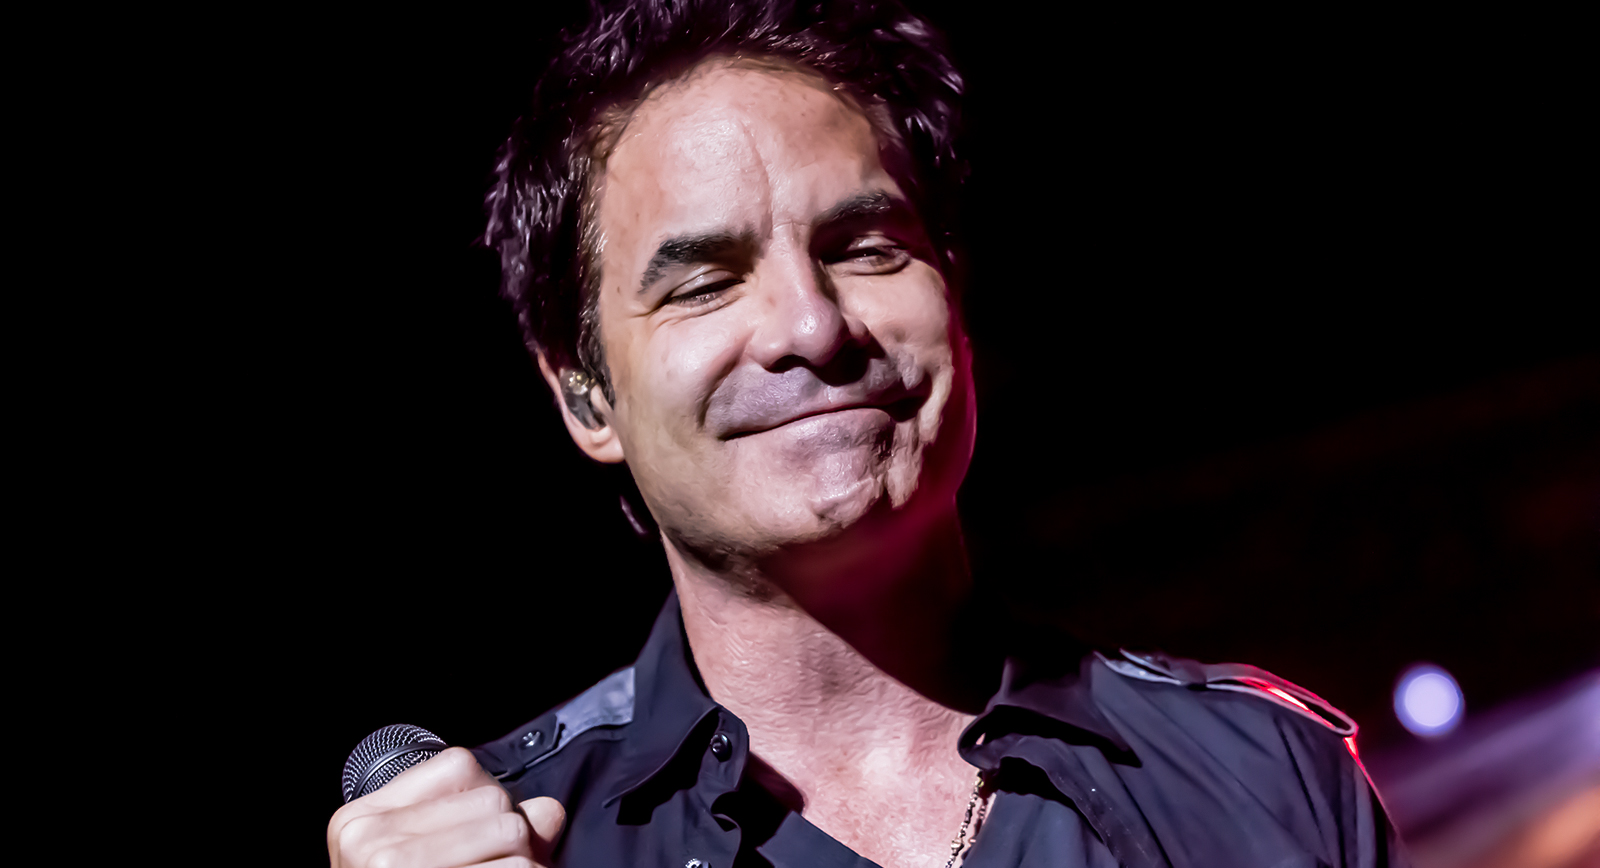 Train-The-English-Beat-Ironstone-Amphitheatre-Murphys-Concert-Review-2016-Photos-REG-GROUP-FI